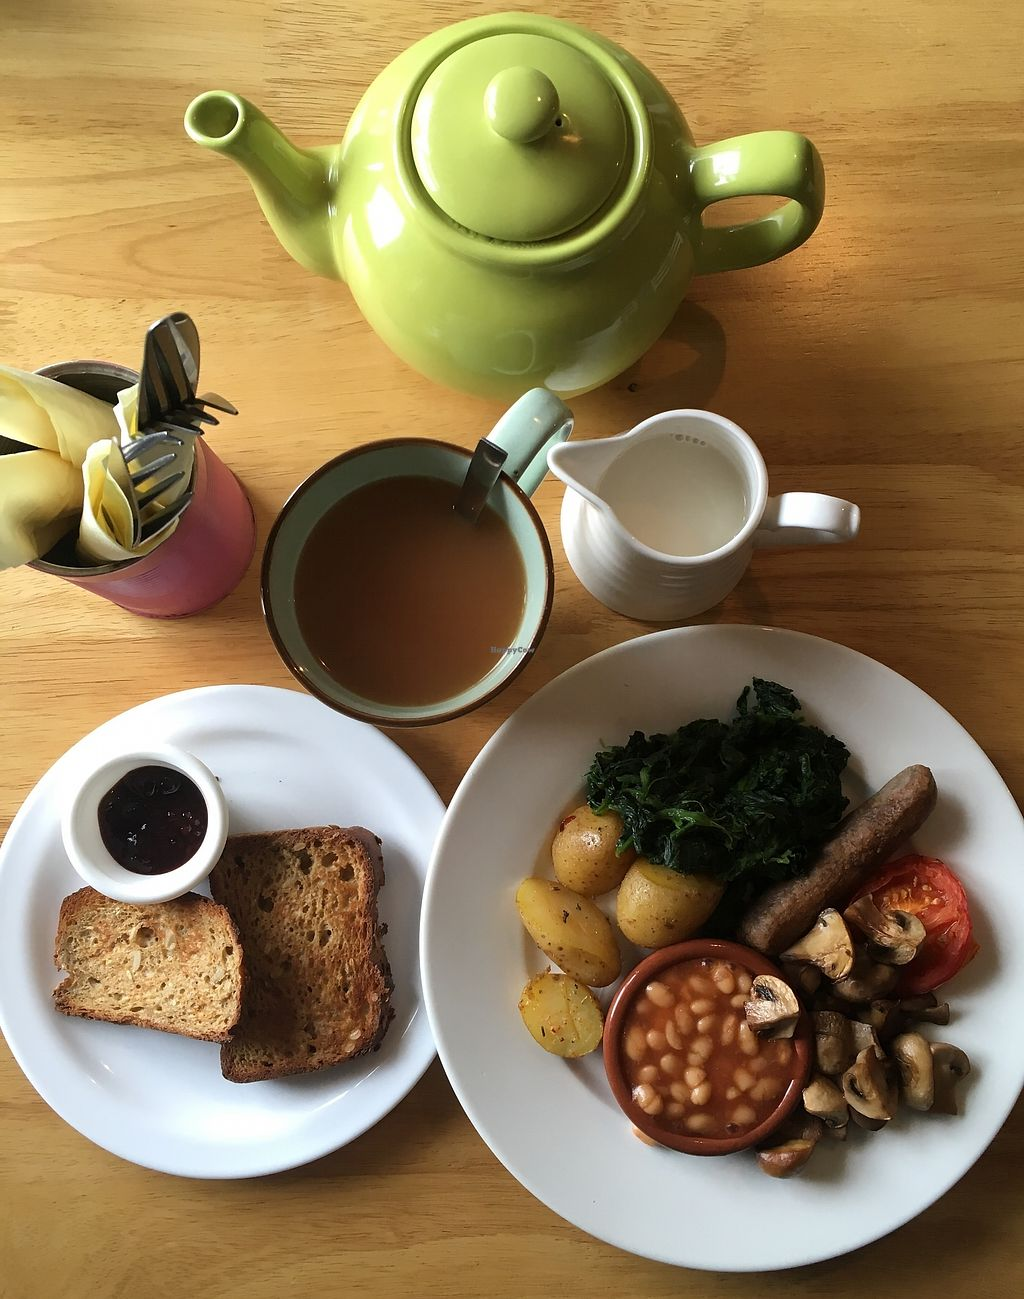 """Photo of Doolin Cafe  by <a href=""""/members/profile/phashonkat"""">phashonkat</a> <br/>Traditional Irish Breakfast vegan style! <br/> July 24, 2017  - <a href='/contact/abuse/image/71584/284083'>Report</a>"""